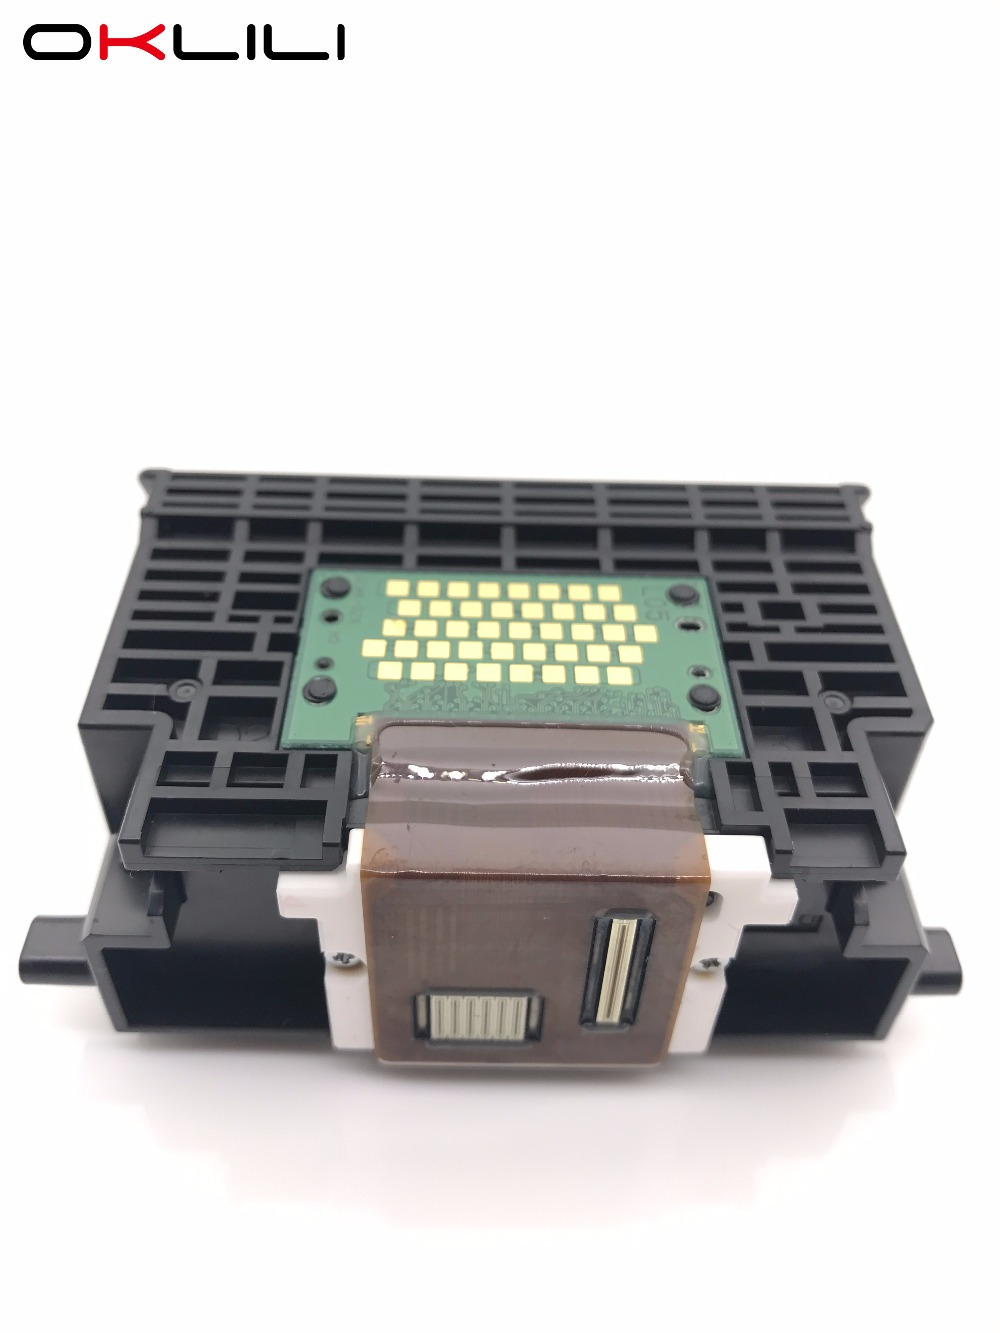 OKLILI ORIGINAL QY6-0059 QY6-0059-000 Printhead Print Head Printer Head for Canon iP4200 MP500 MP530 original qy6 0075 qy6 0075 000 printhead print head printer head for canon ip5300 mp810 ip4500 mp610 mx850